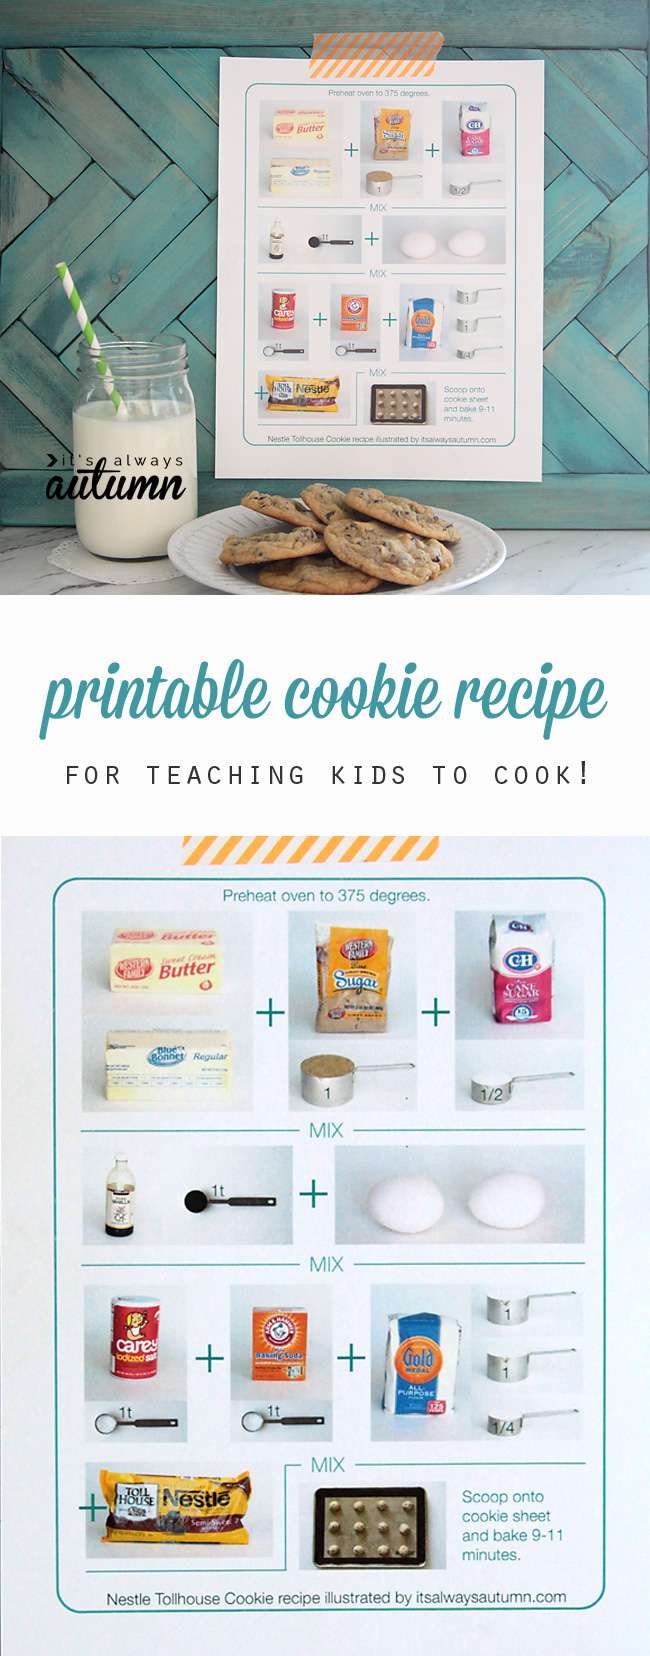 What a fun idea! This printable cookie recipe sheet is perfect for teaching kids how to cook, even if they can't read yet.